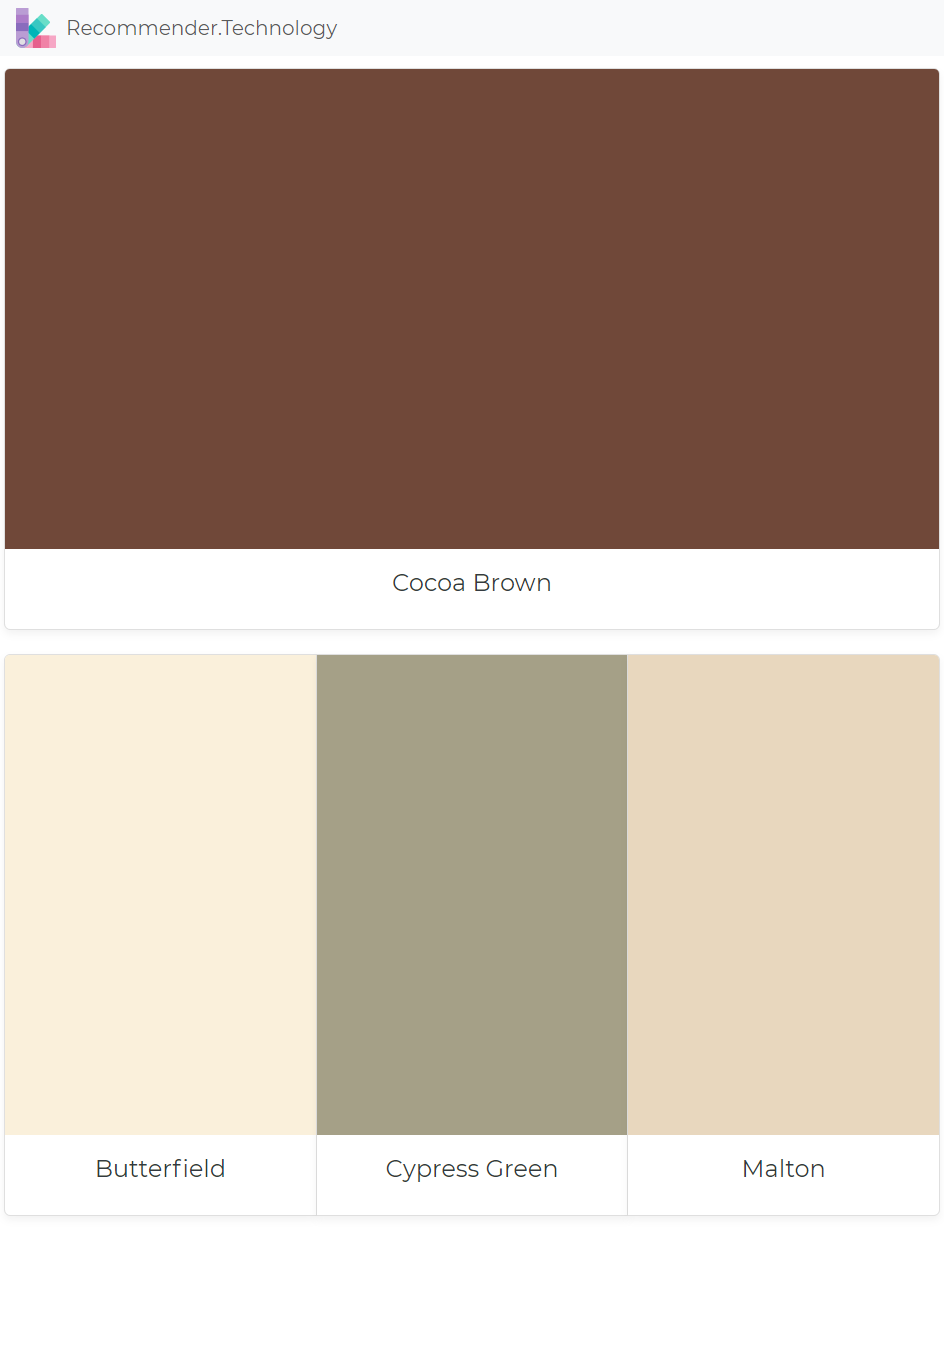 Cocoa Brown Erfield Cypress Green Malton Paint Color Palettes Colors